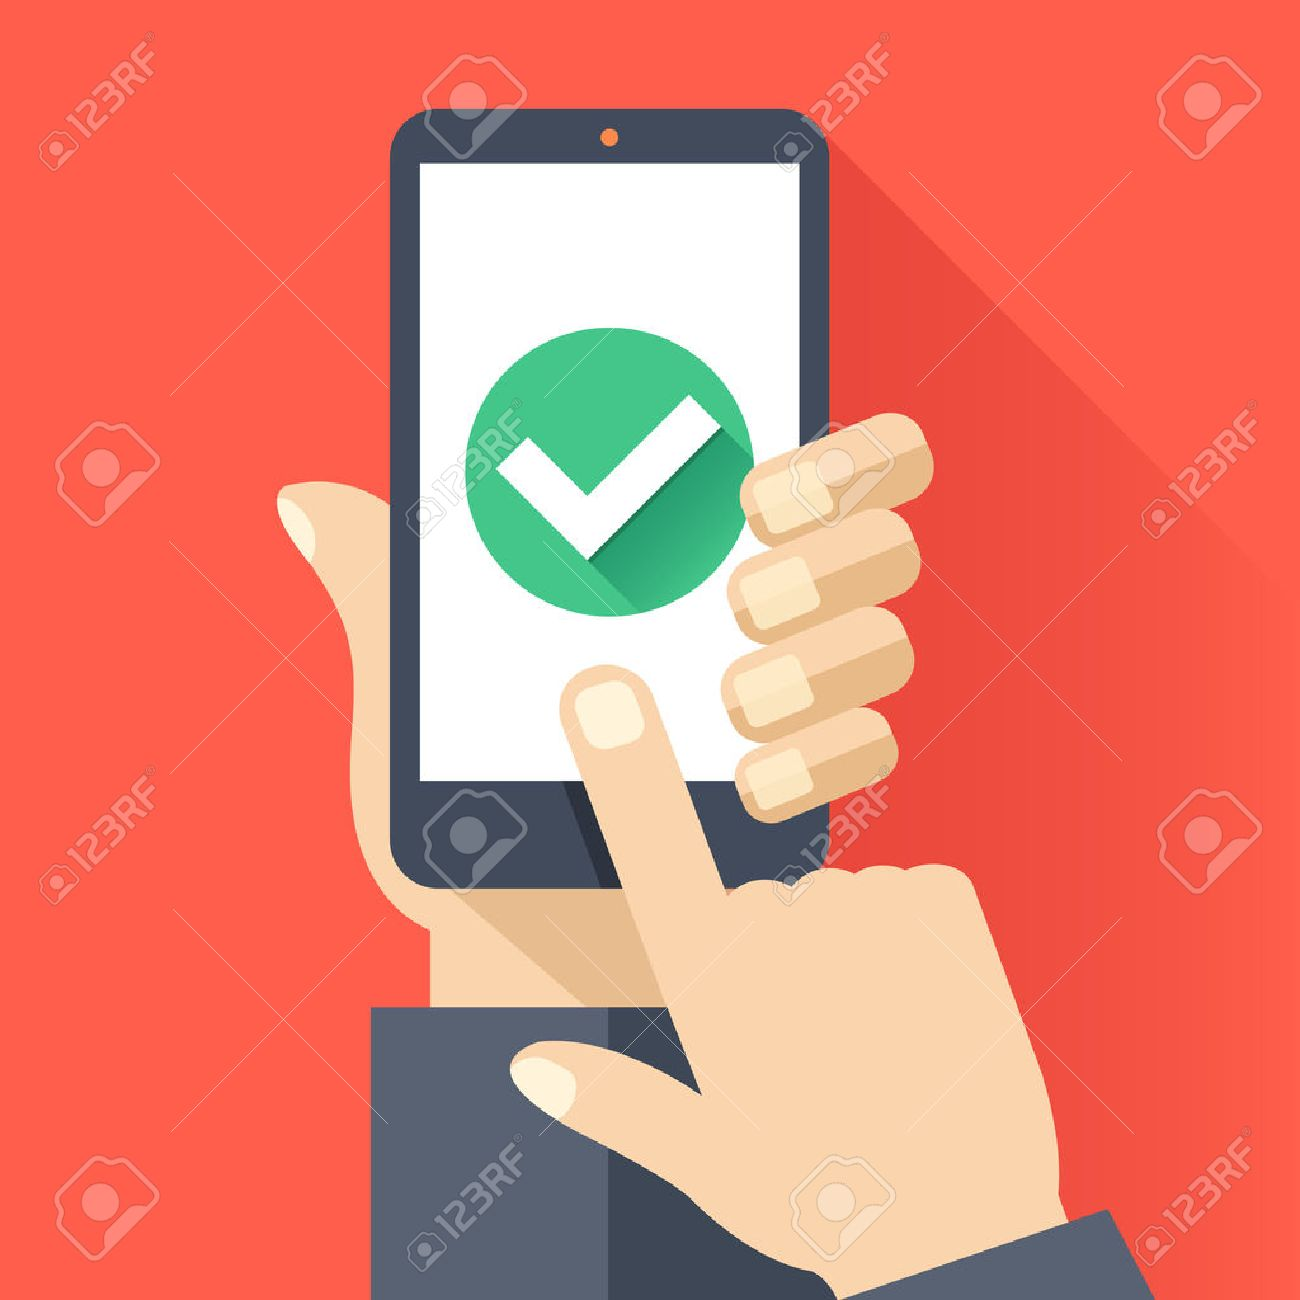 Hand holds smartphone with round green checkmark icon on smartphone screen. Task complete concept. Flat design vector illustration - 58310916